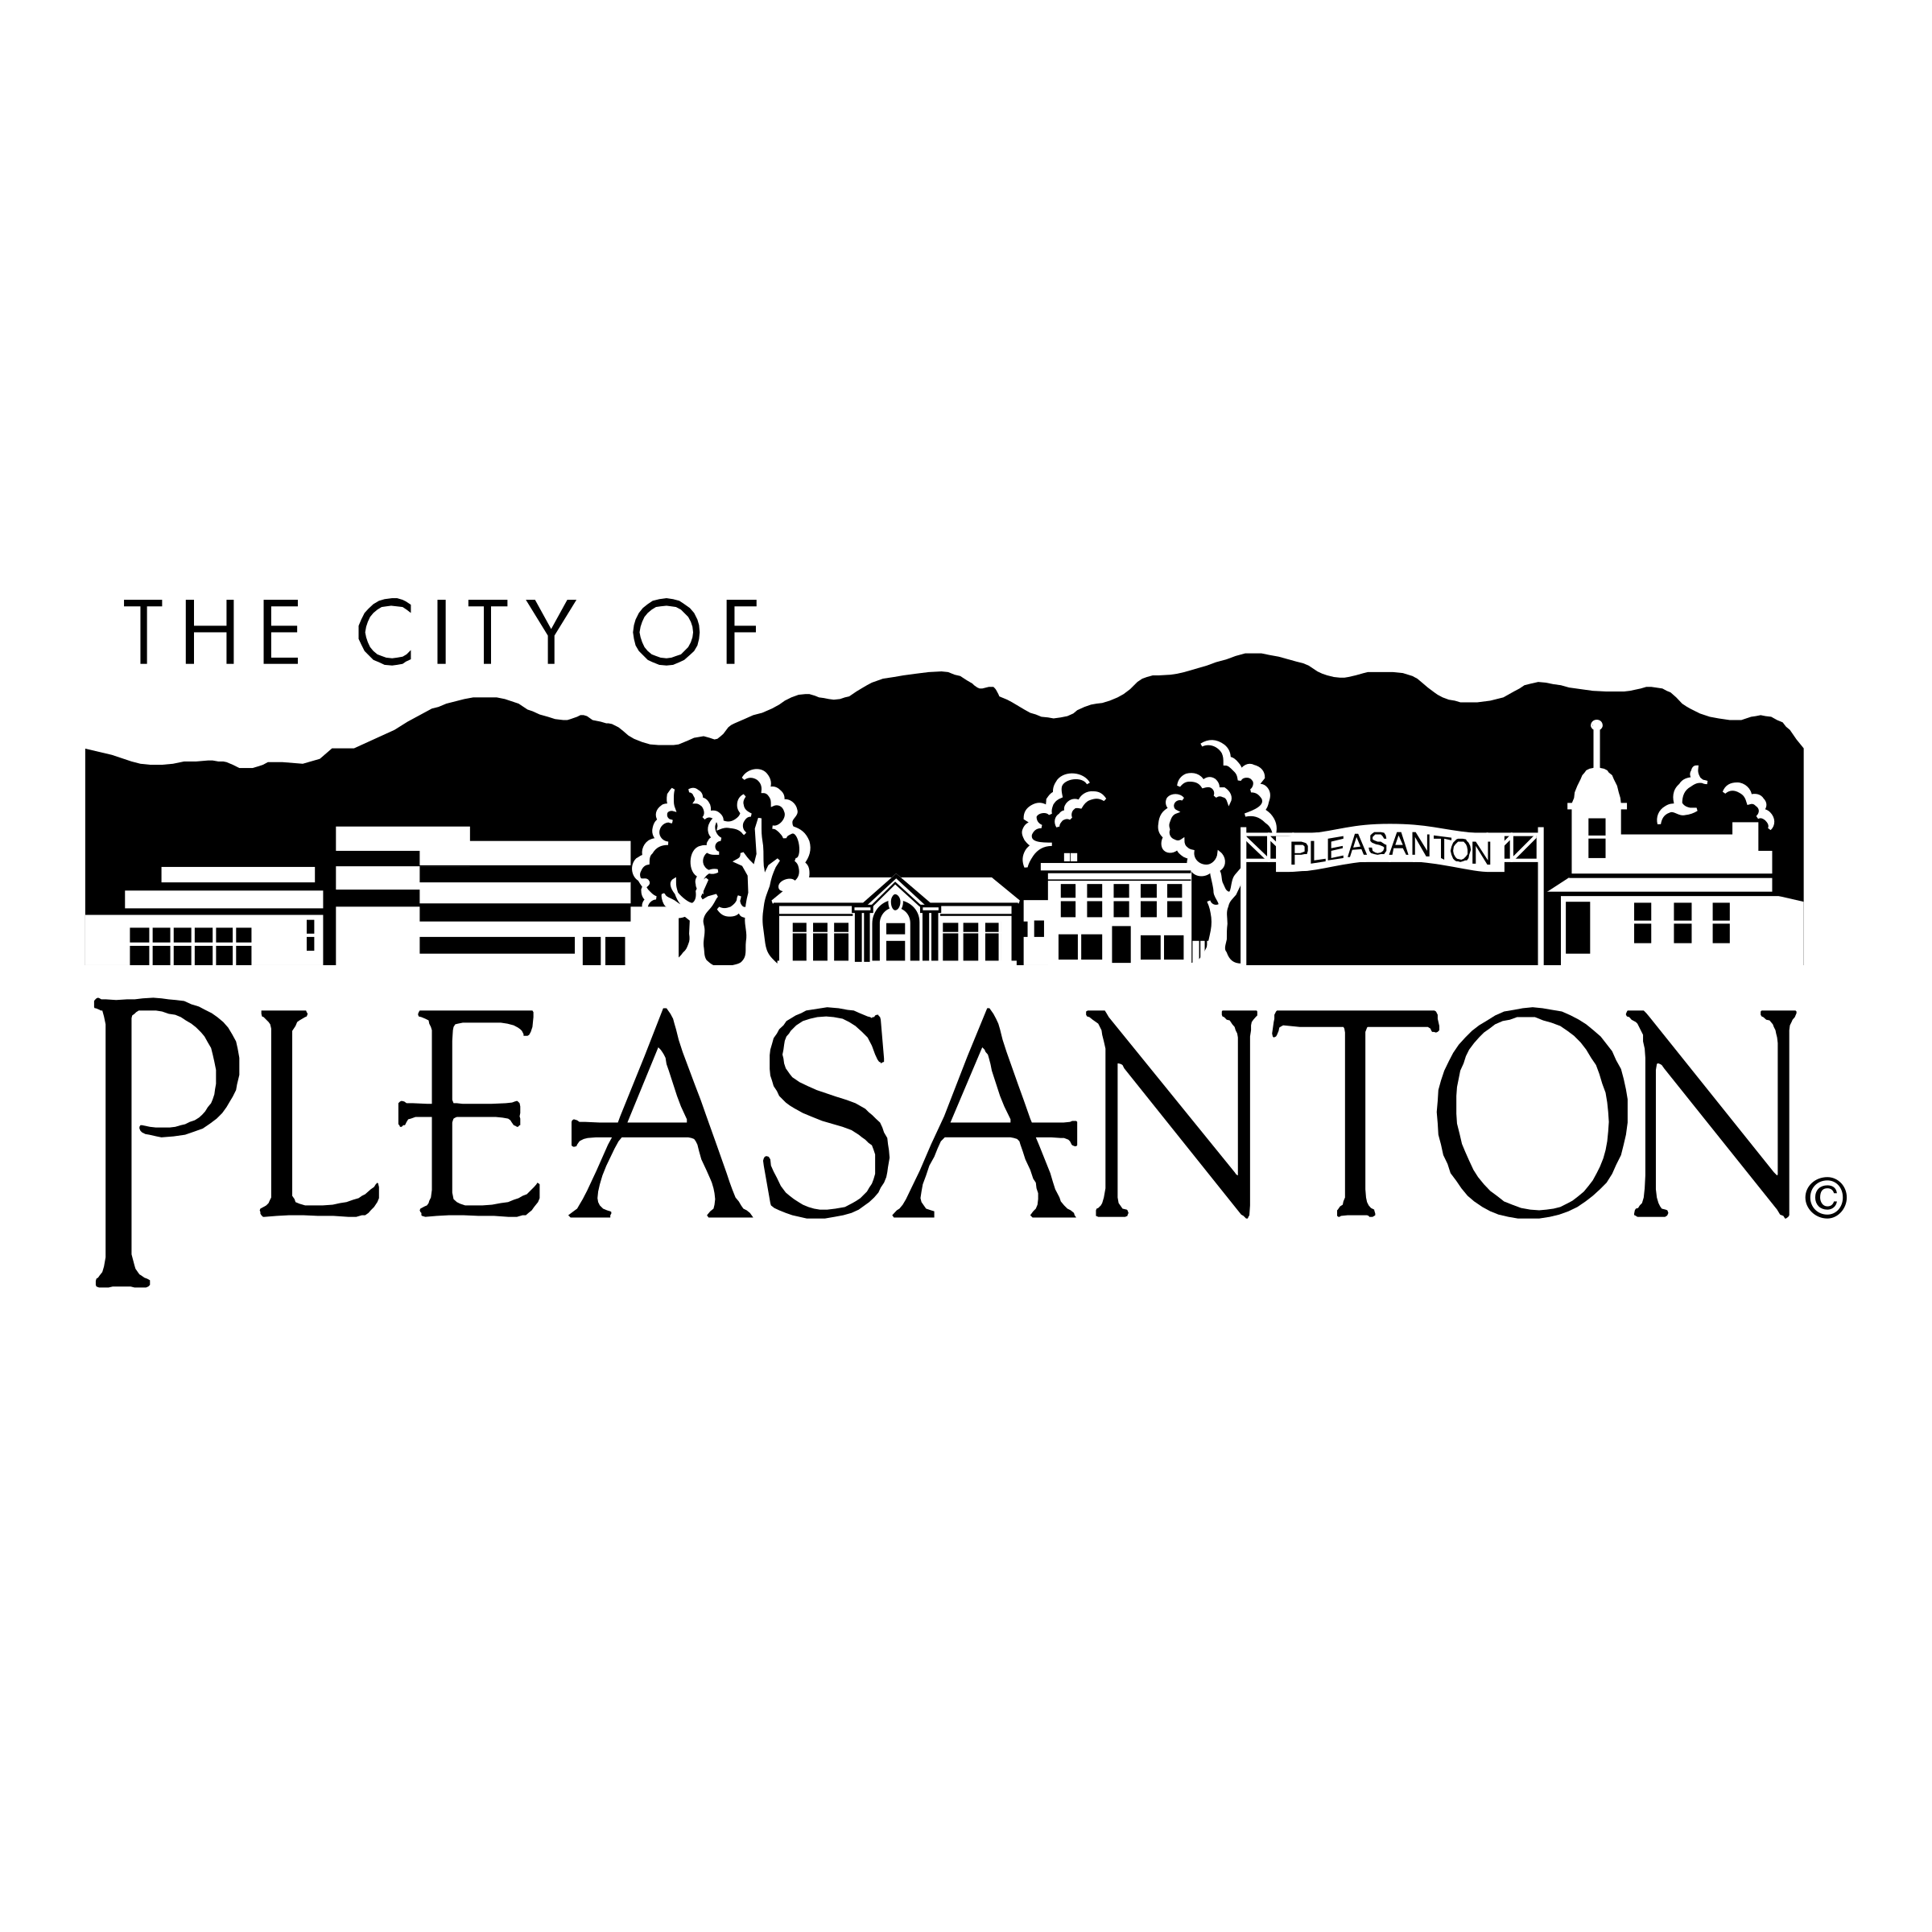 the-city-of-pleasanton-logo-png-transparent.png